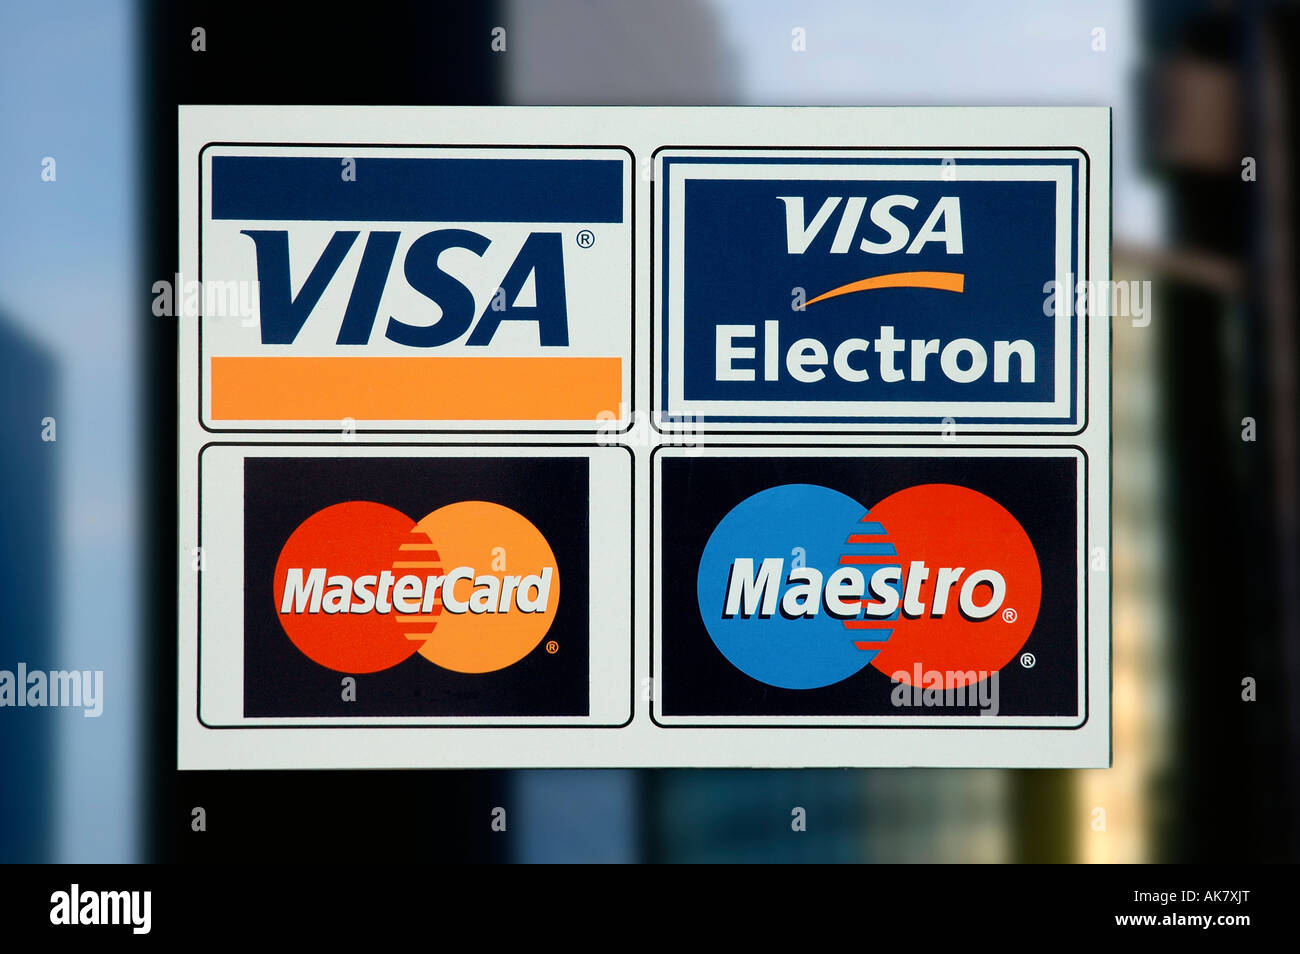 Credit Card Signs Stock Photo 14914367 Alamy